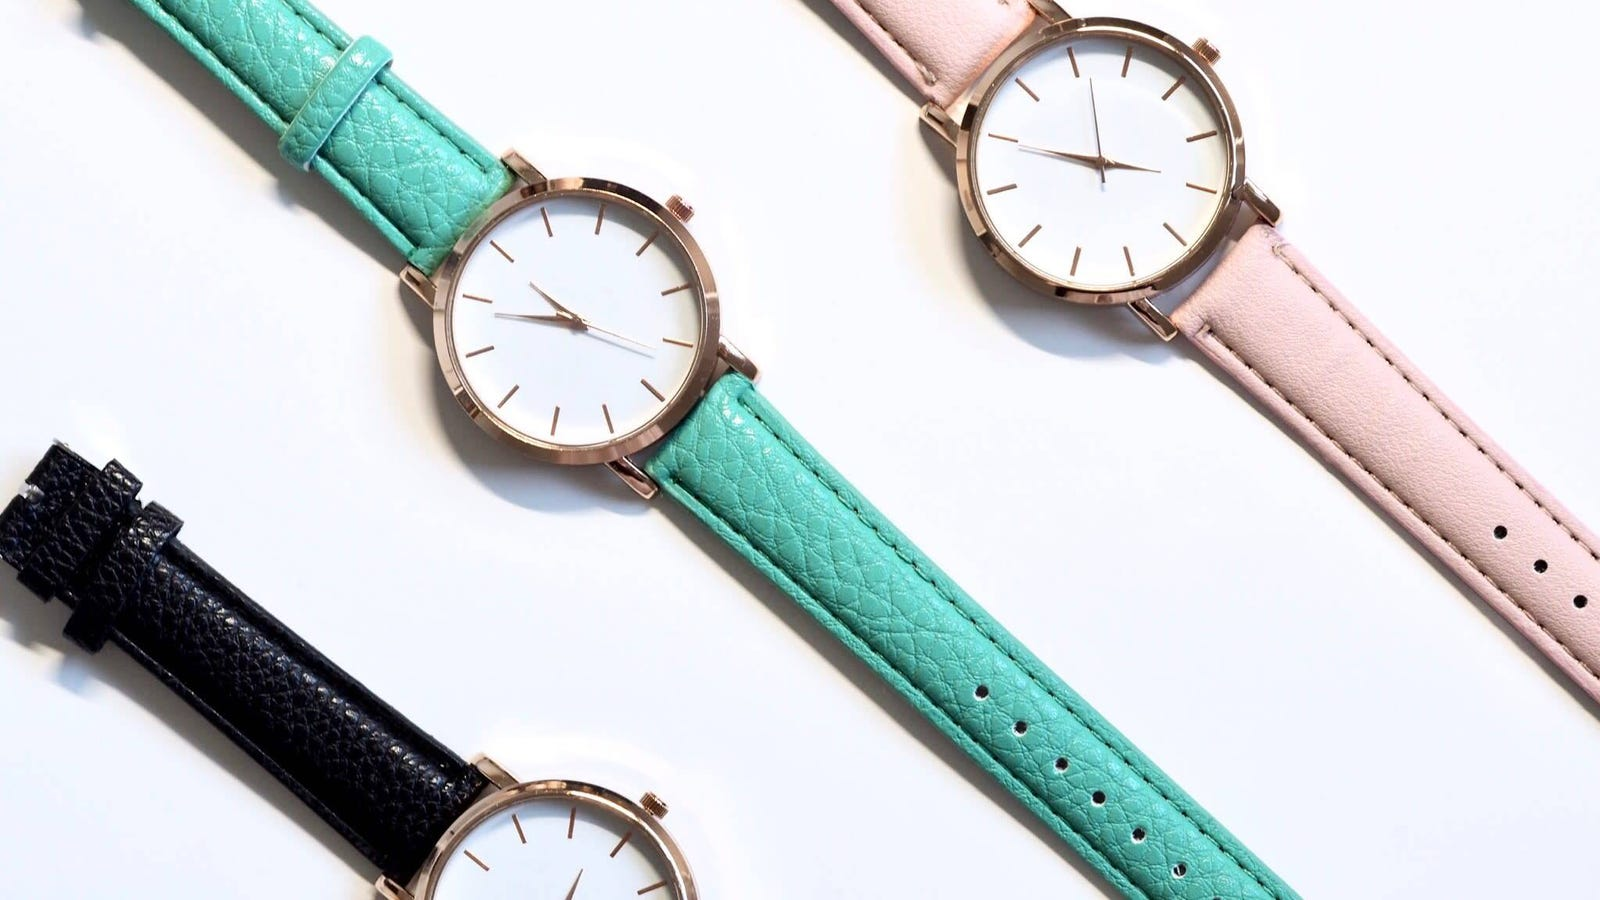 How Do You Clean a Watch Band, Anyway?